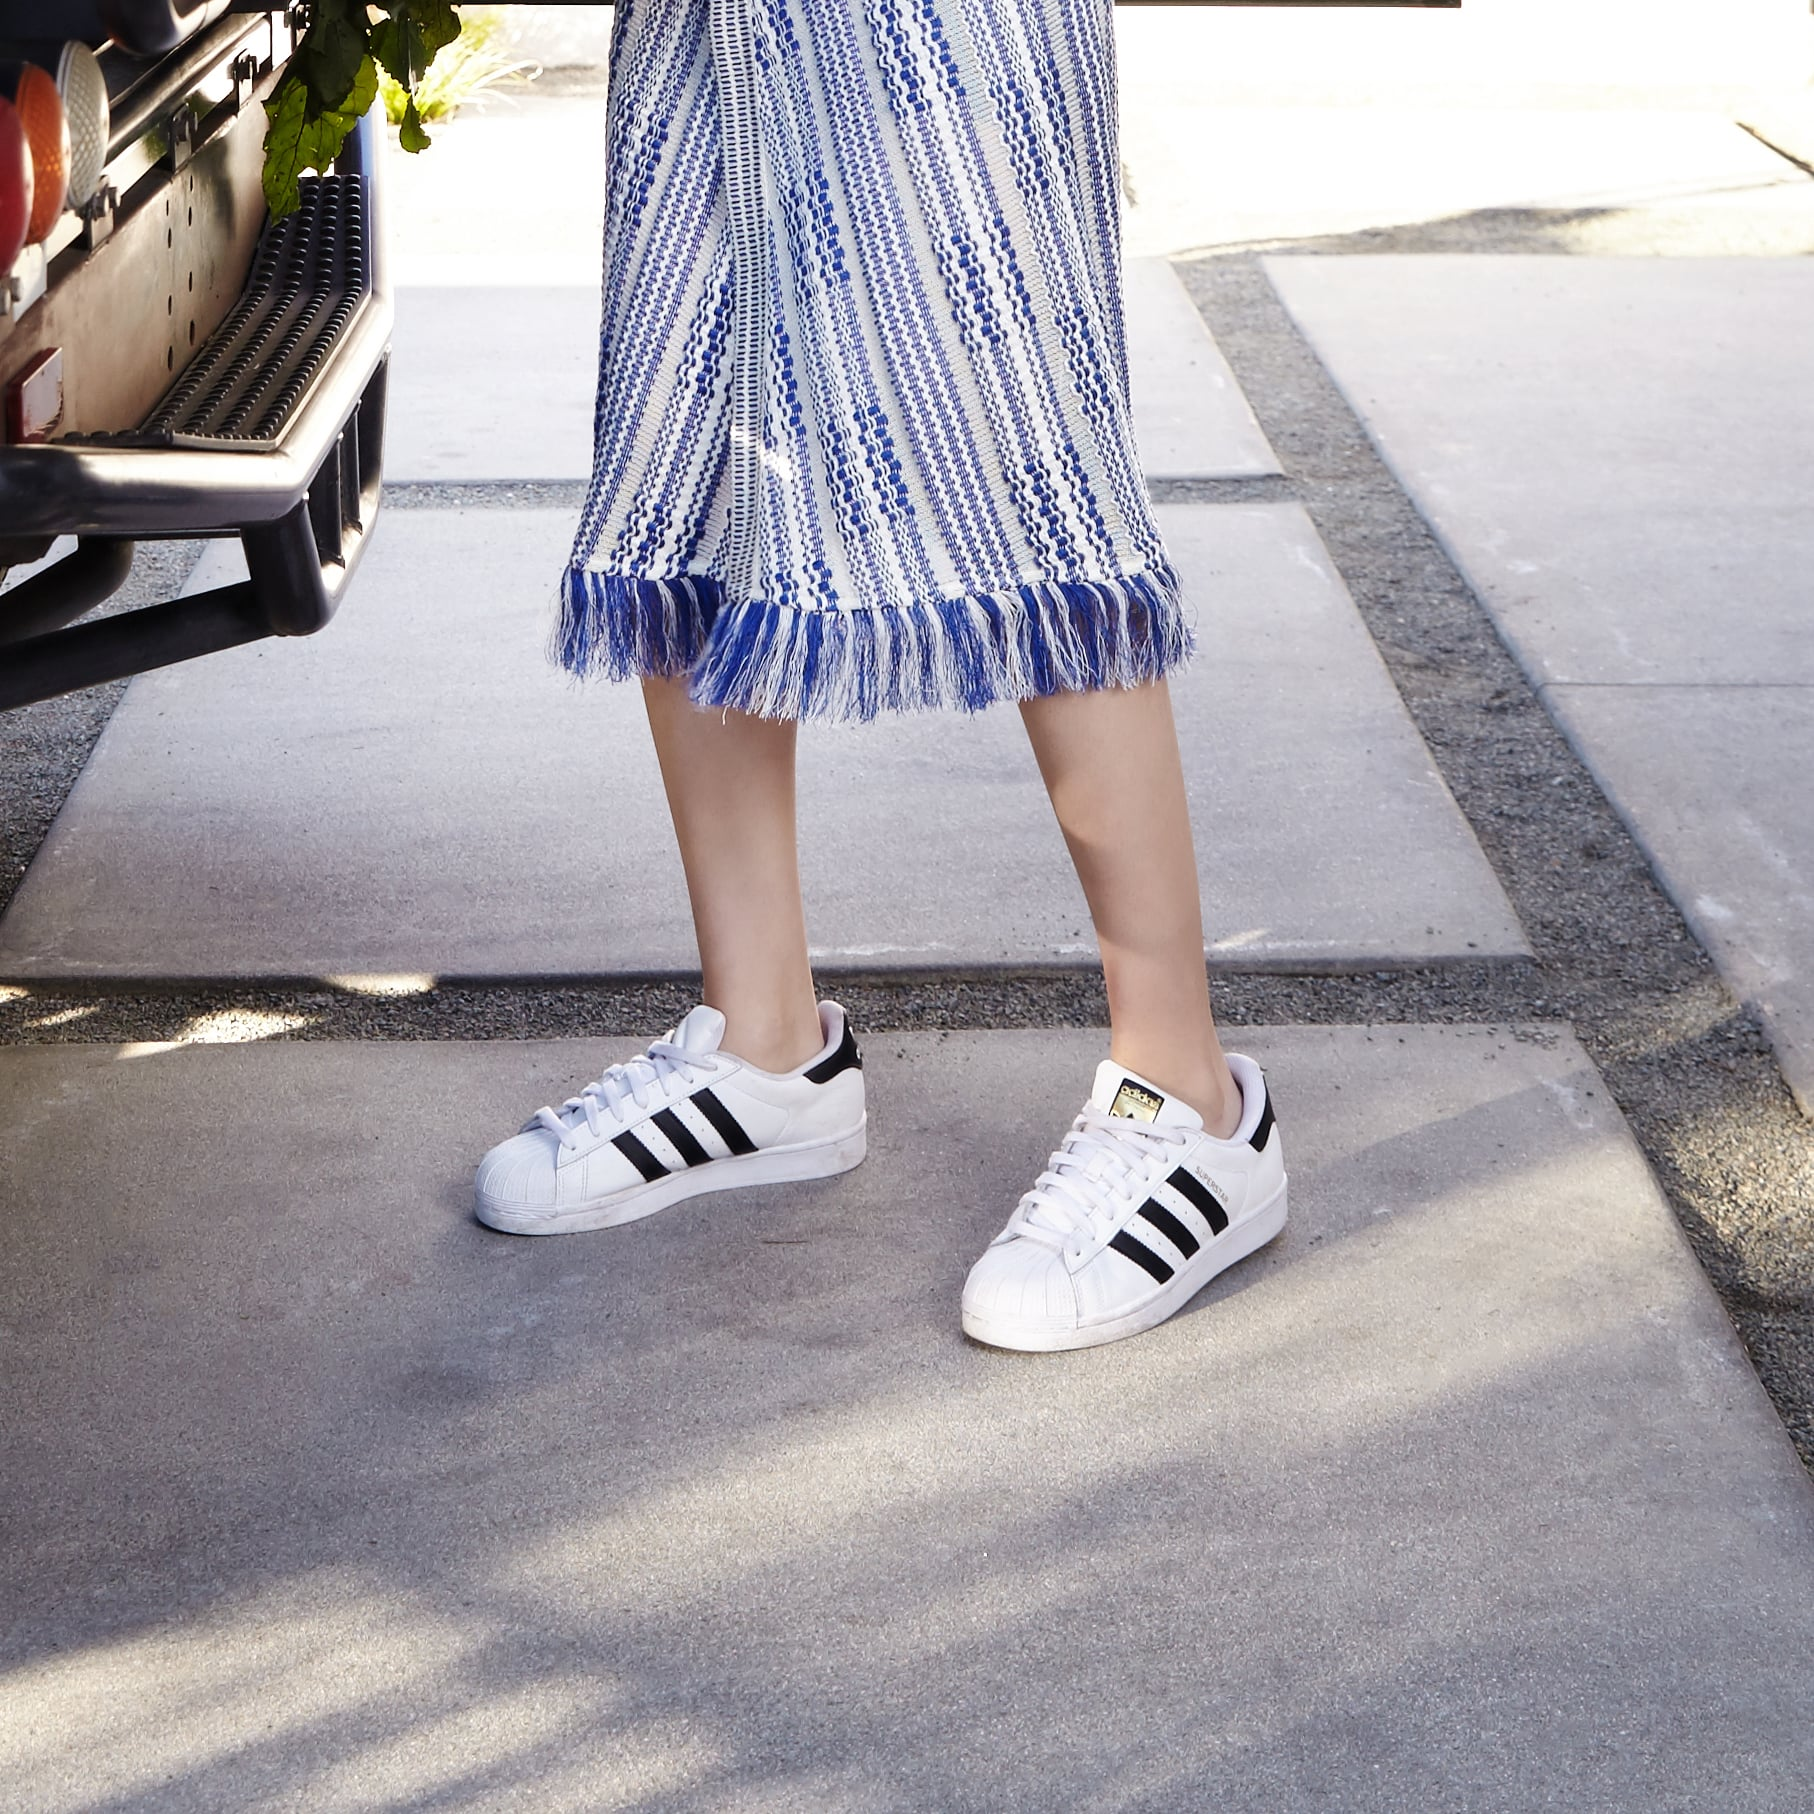 Best Sneaker For Your Zodiac Sign